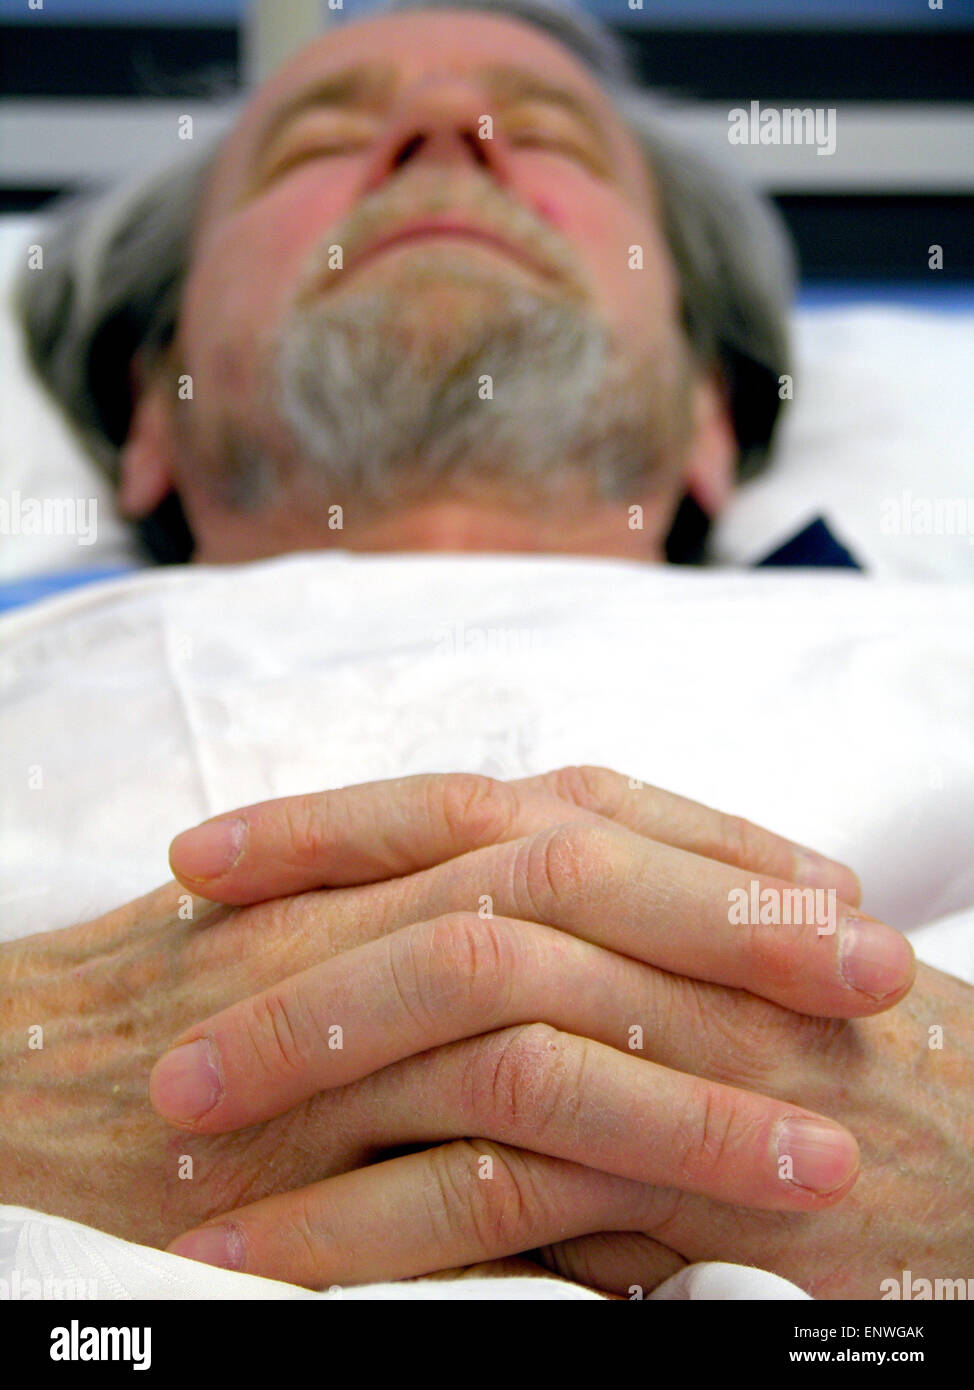 Patient is dying Stock Photo